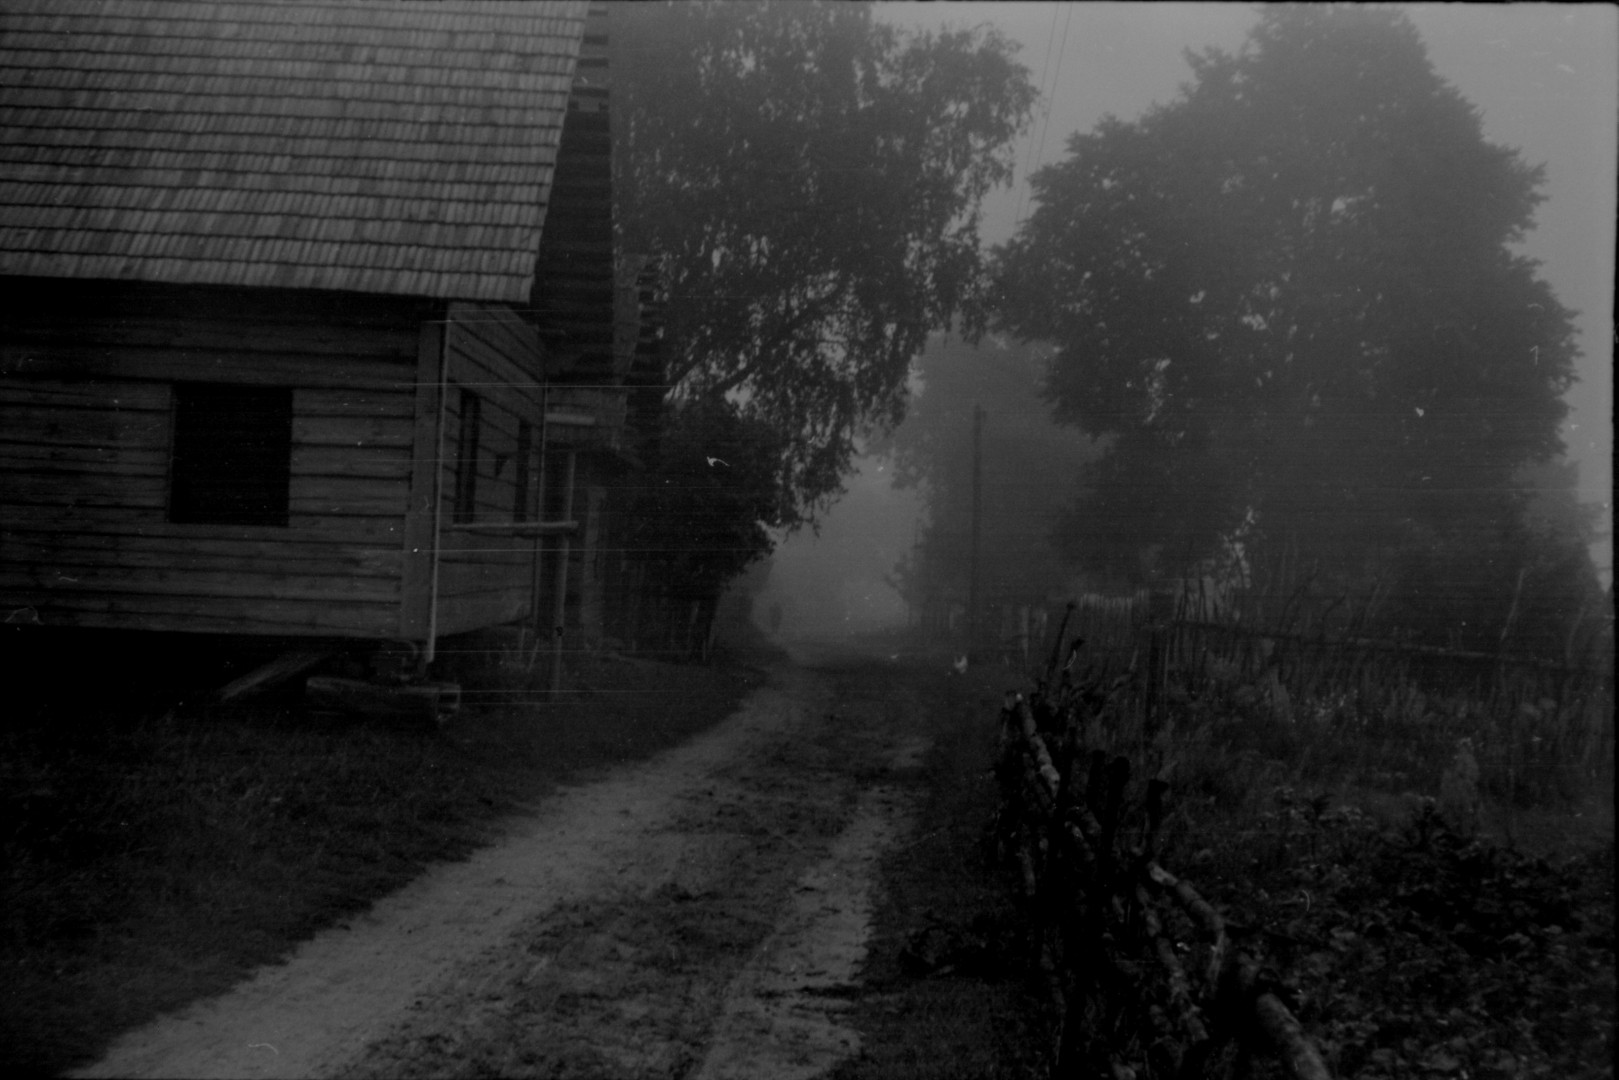 LTRFt D 6632 Street in unknown village (the photograph might be taken in Dieveniškės, Žižmai, Pupiškės, or Šilinė in Šalčininkai district, 1957)